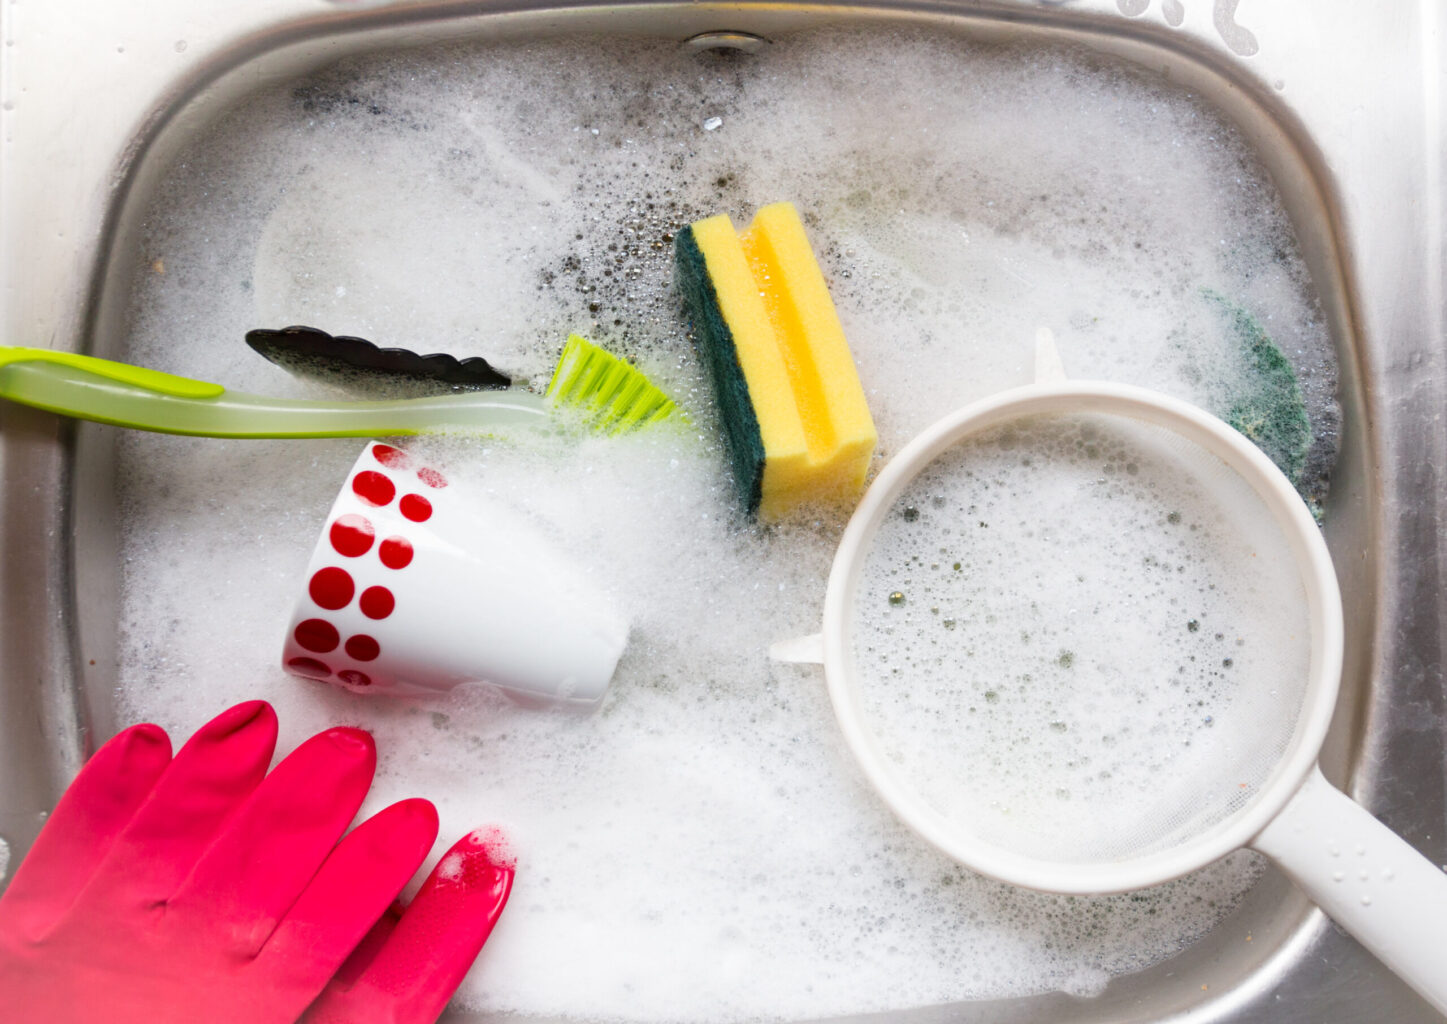 Dishwasher vs hand washing – which is better for your water bill and the environment?